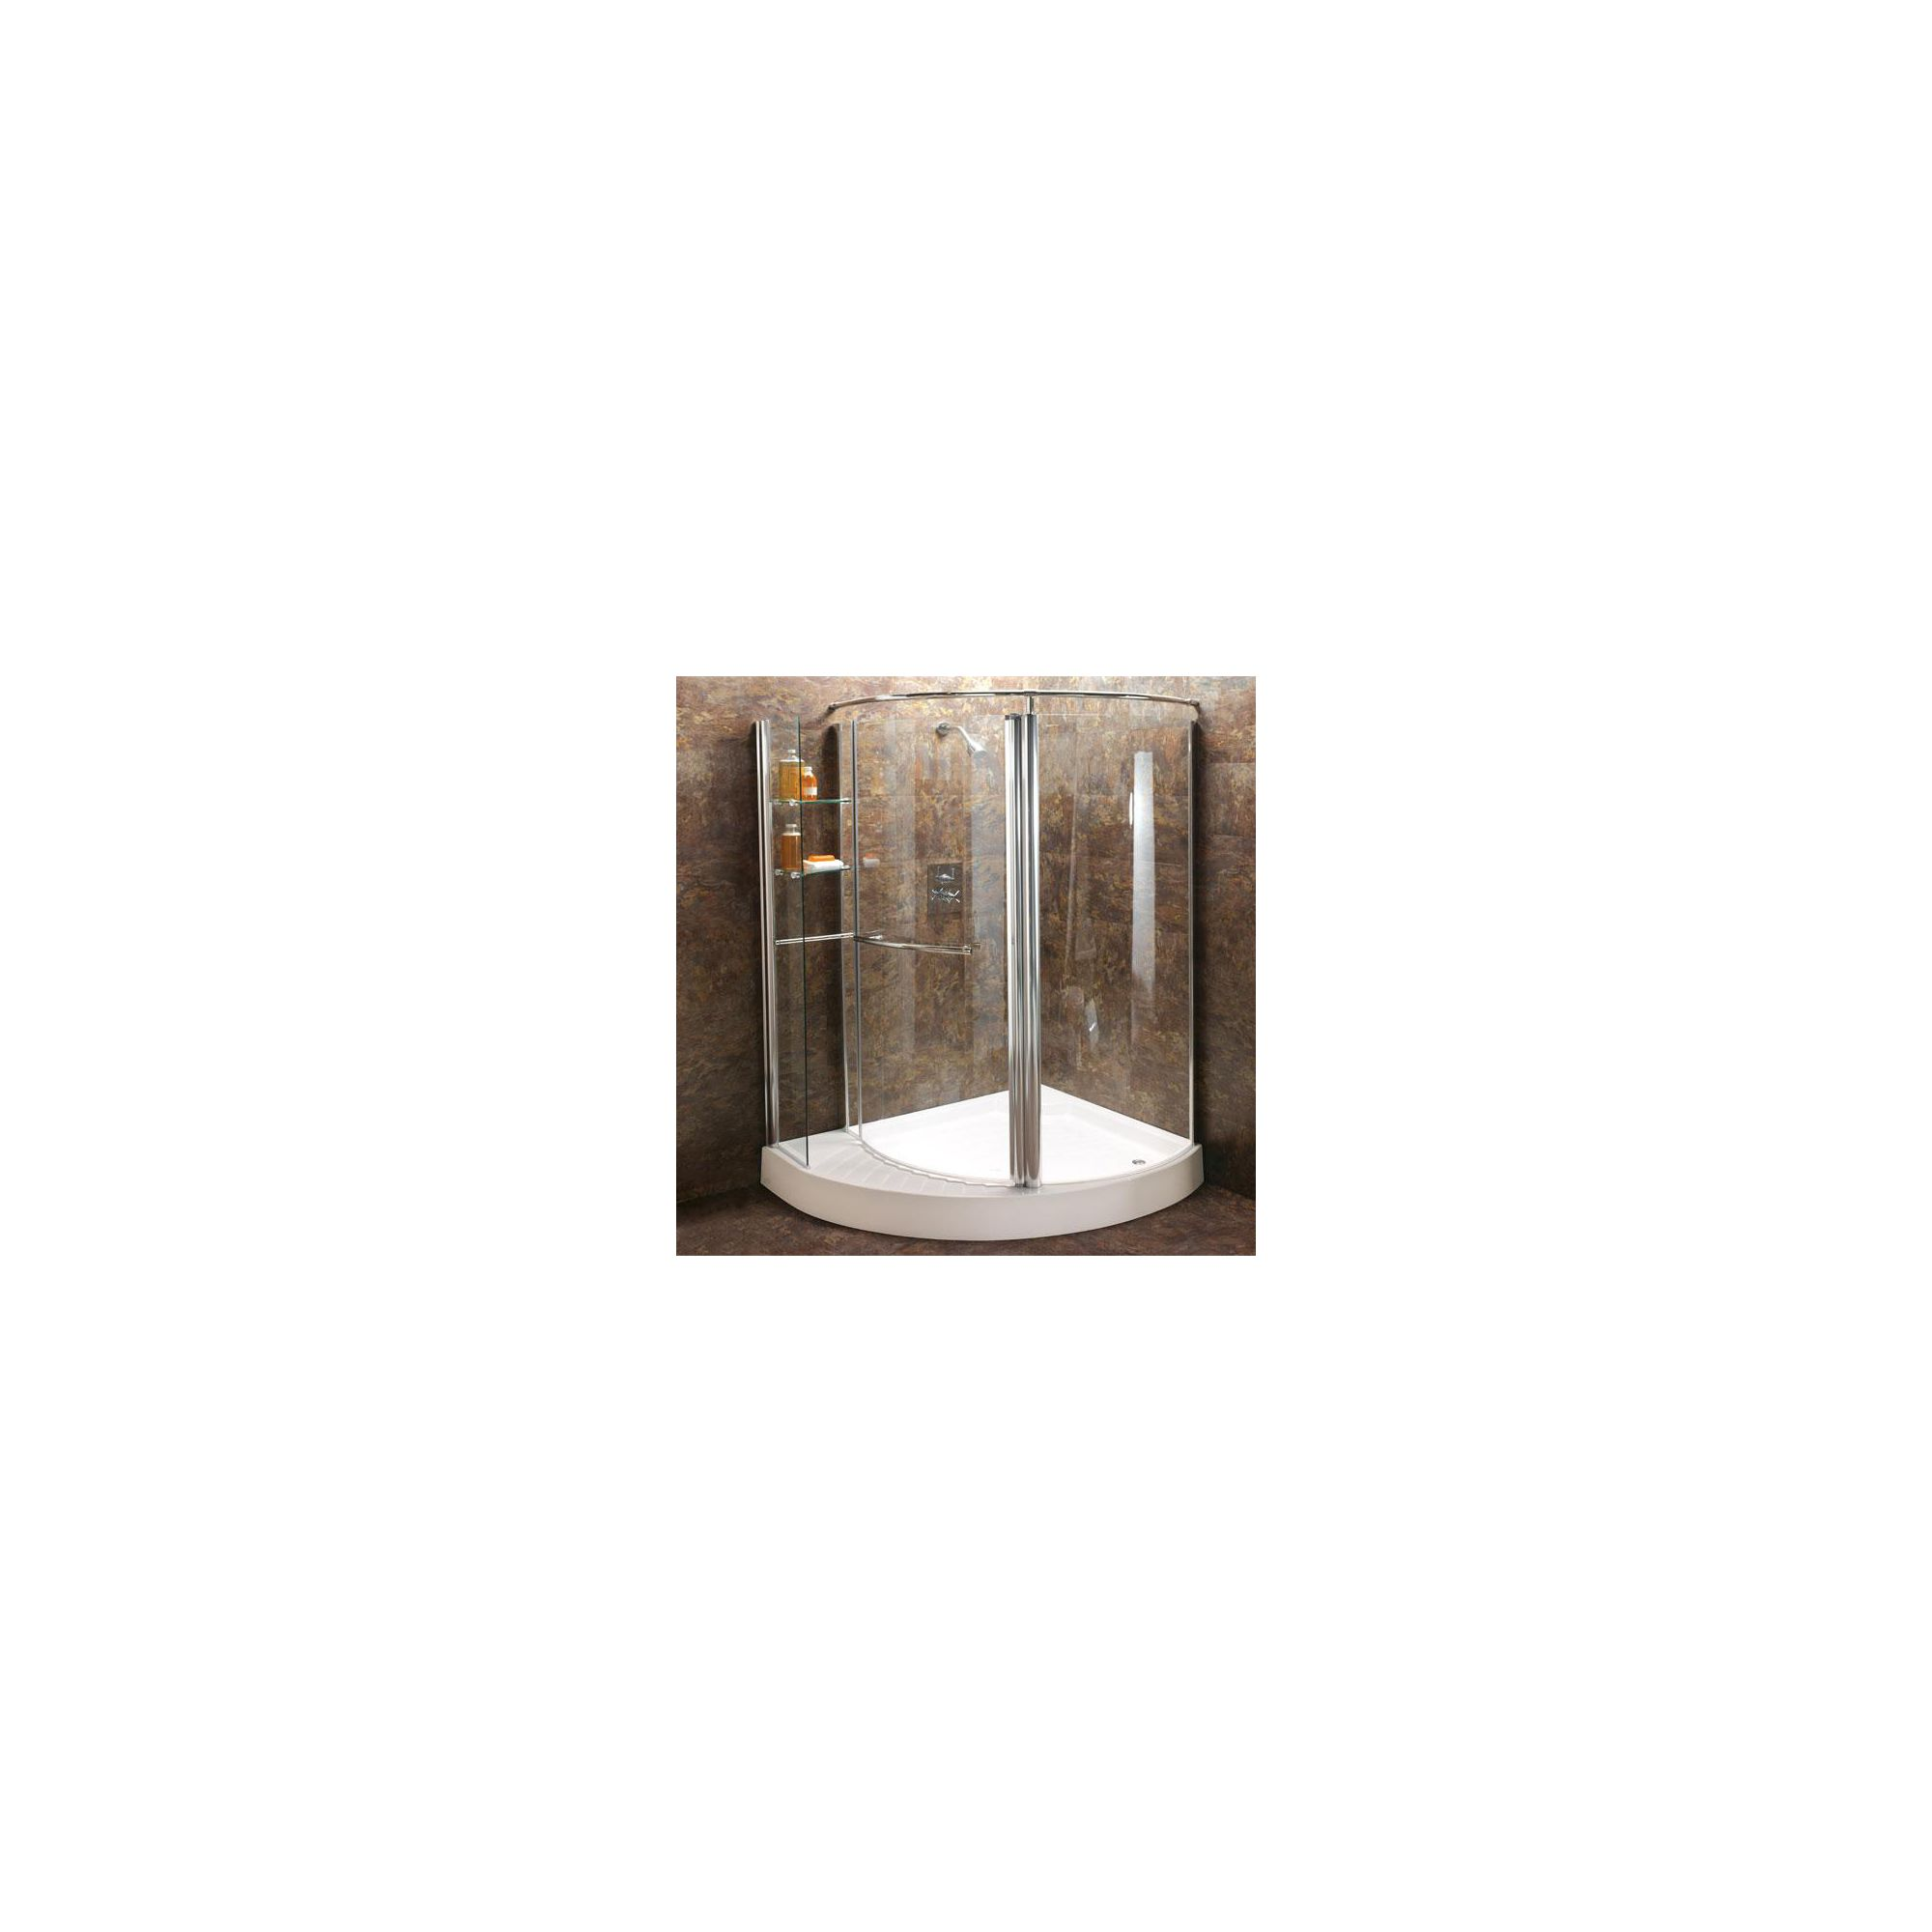 Balterley Offset Quadrant Shower Door, 1250mm x 1000mm Wide, Right Handed, 6mm Glass at Tesco Direct